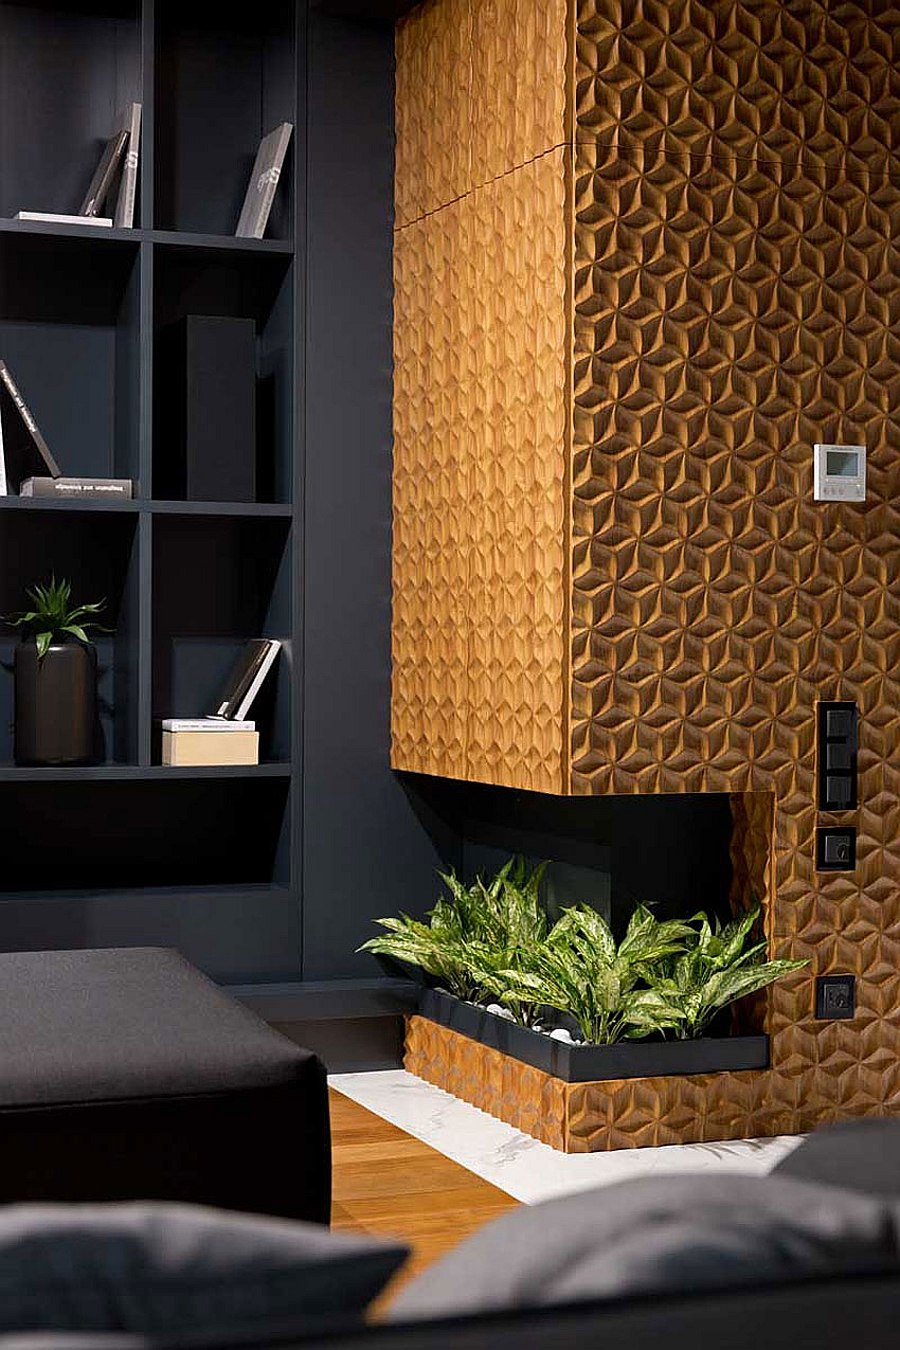 Fireplace surrounded by the 3D carved wooden panels becomes the focal point of the room